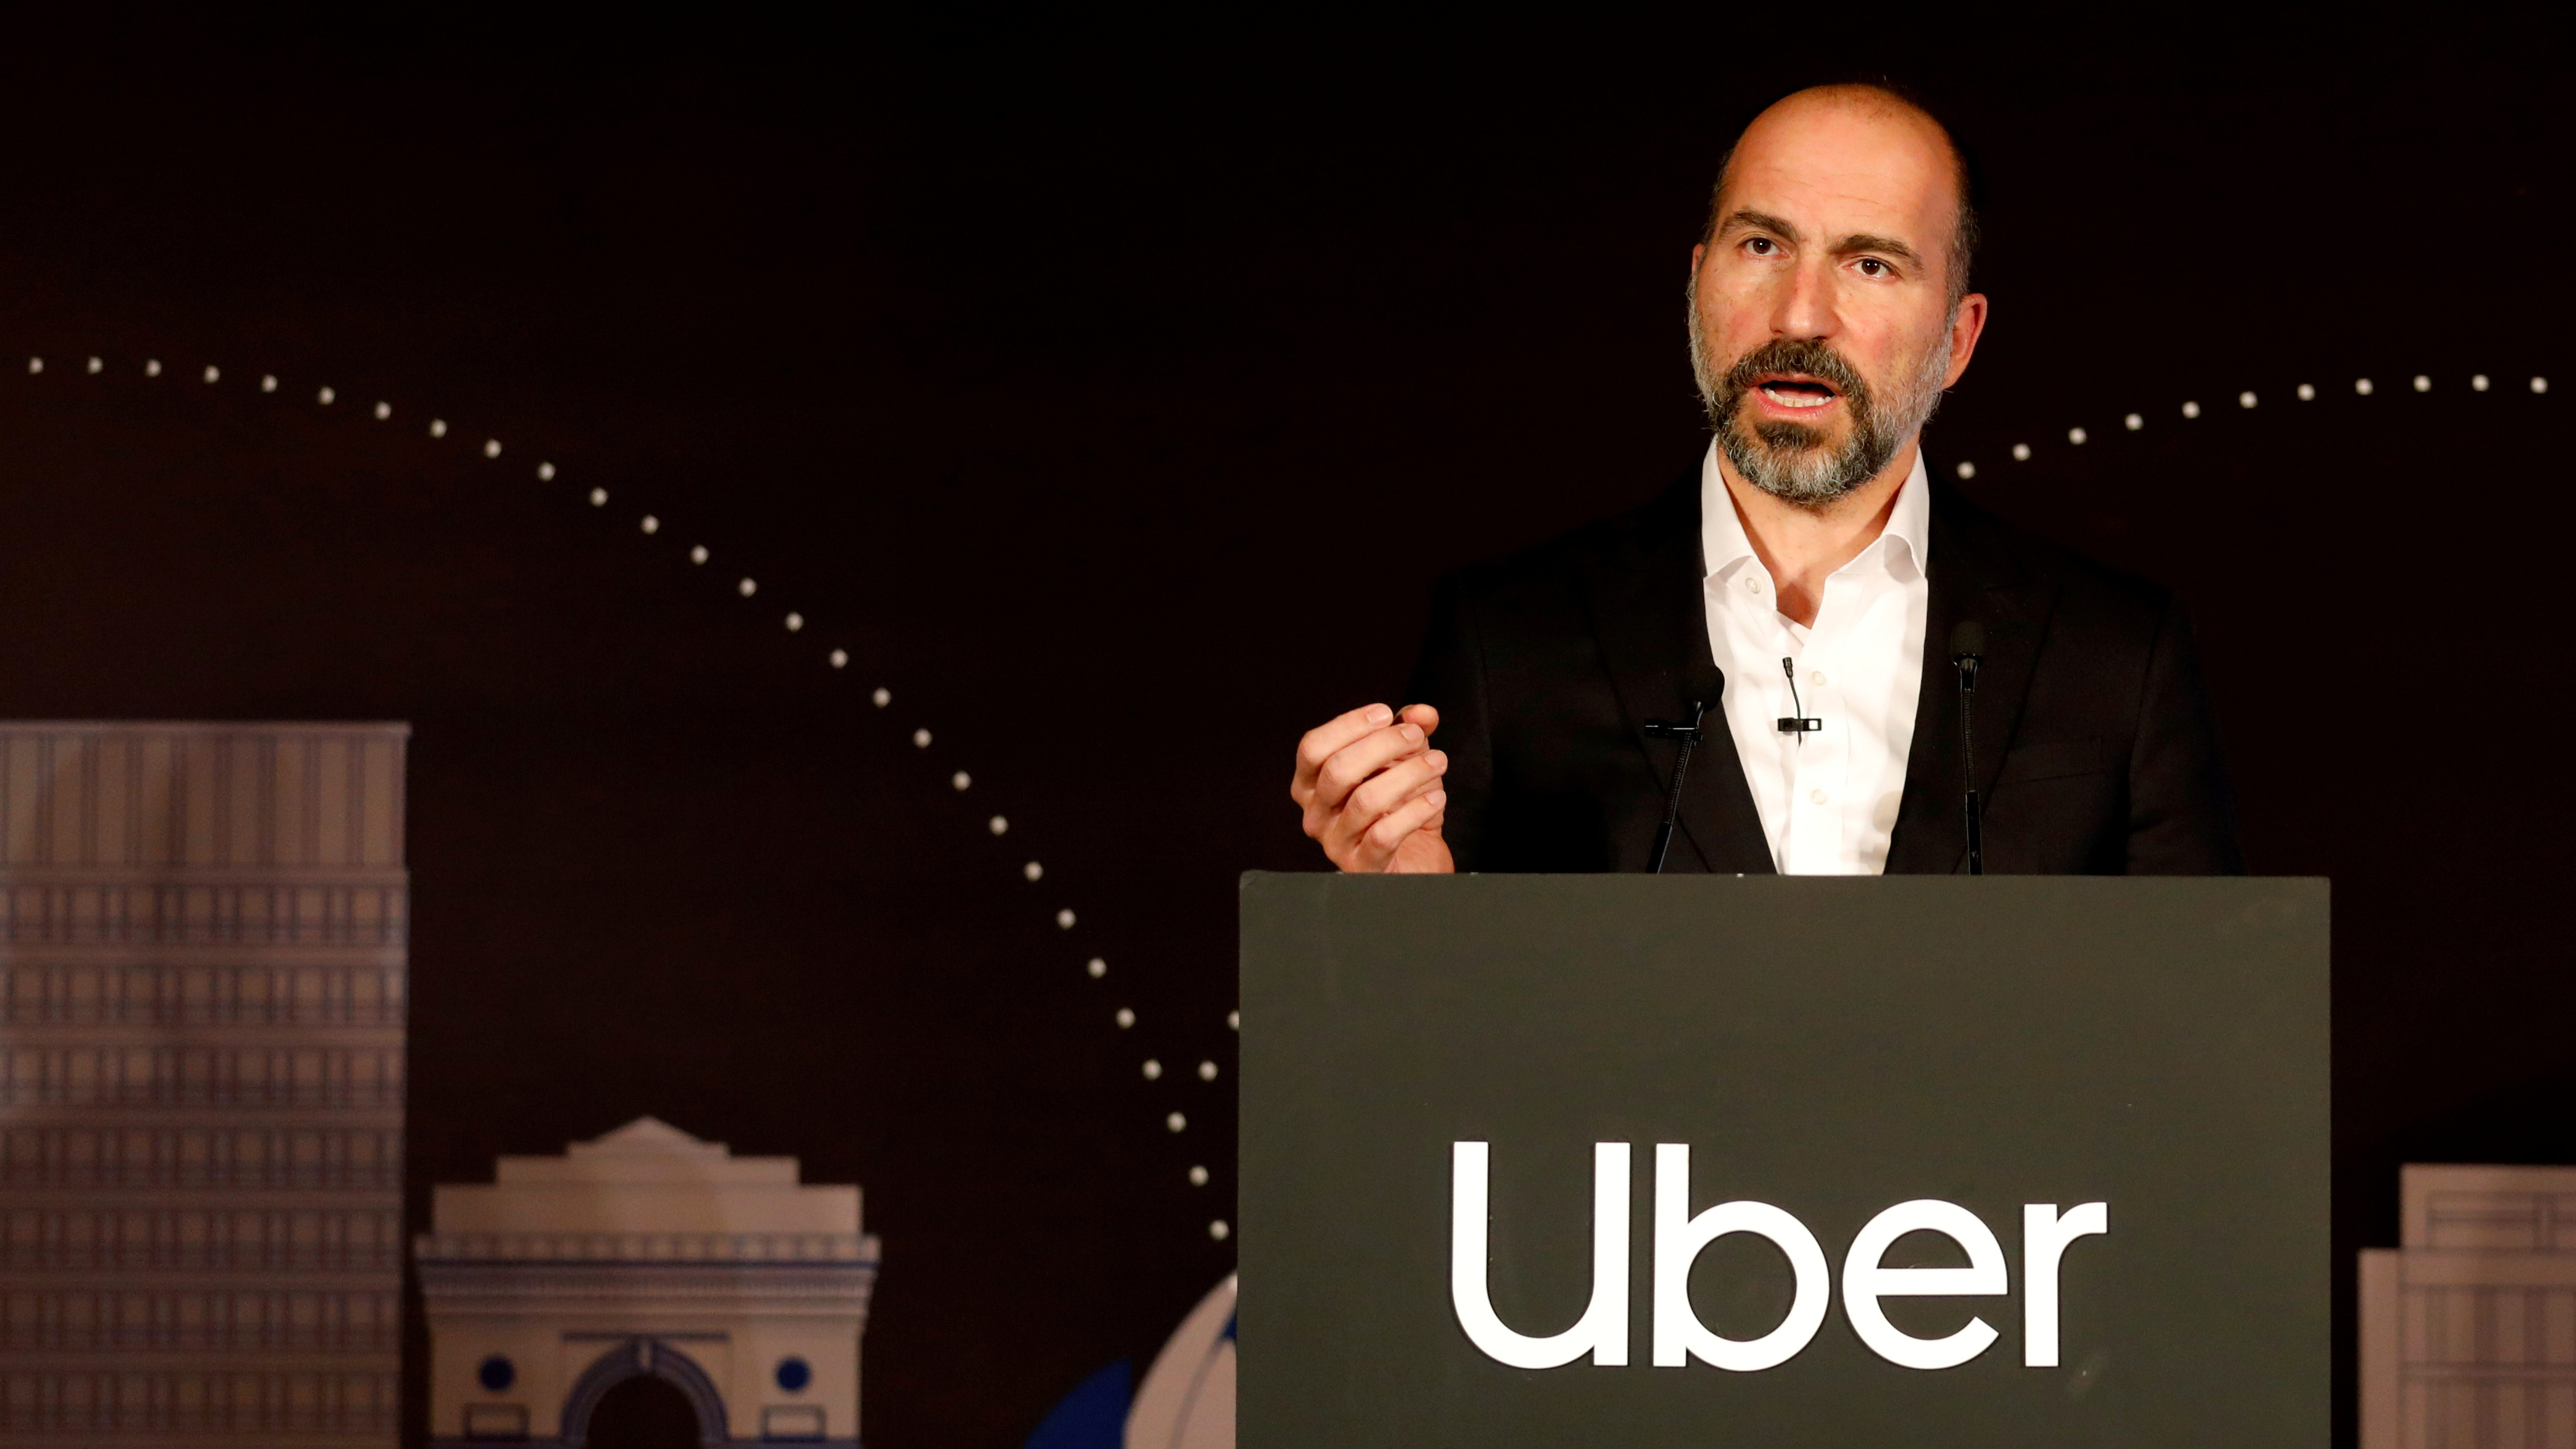 Uber's free-wheeling era of growth is coming to an end